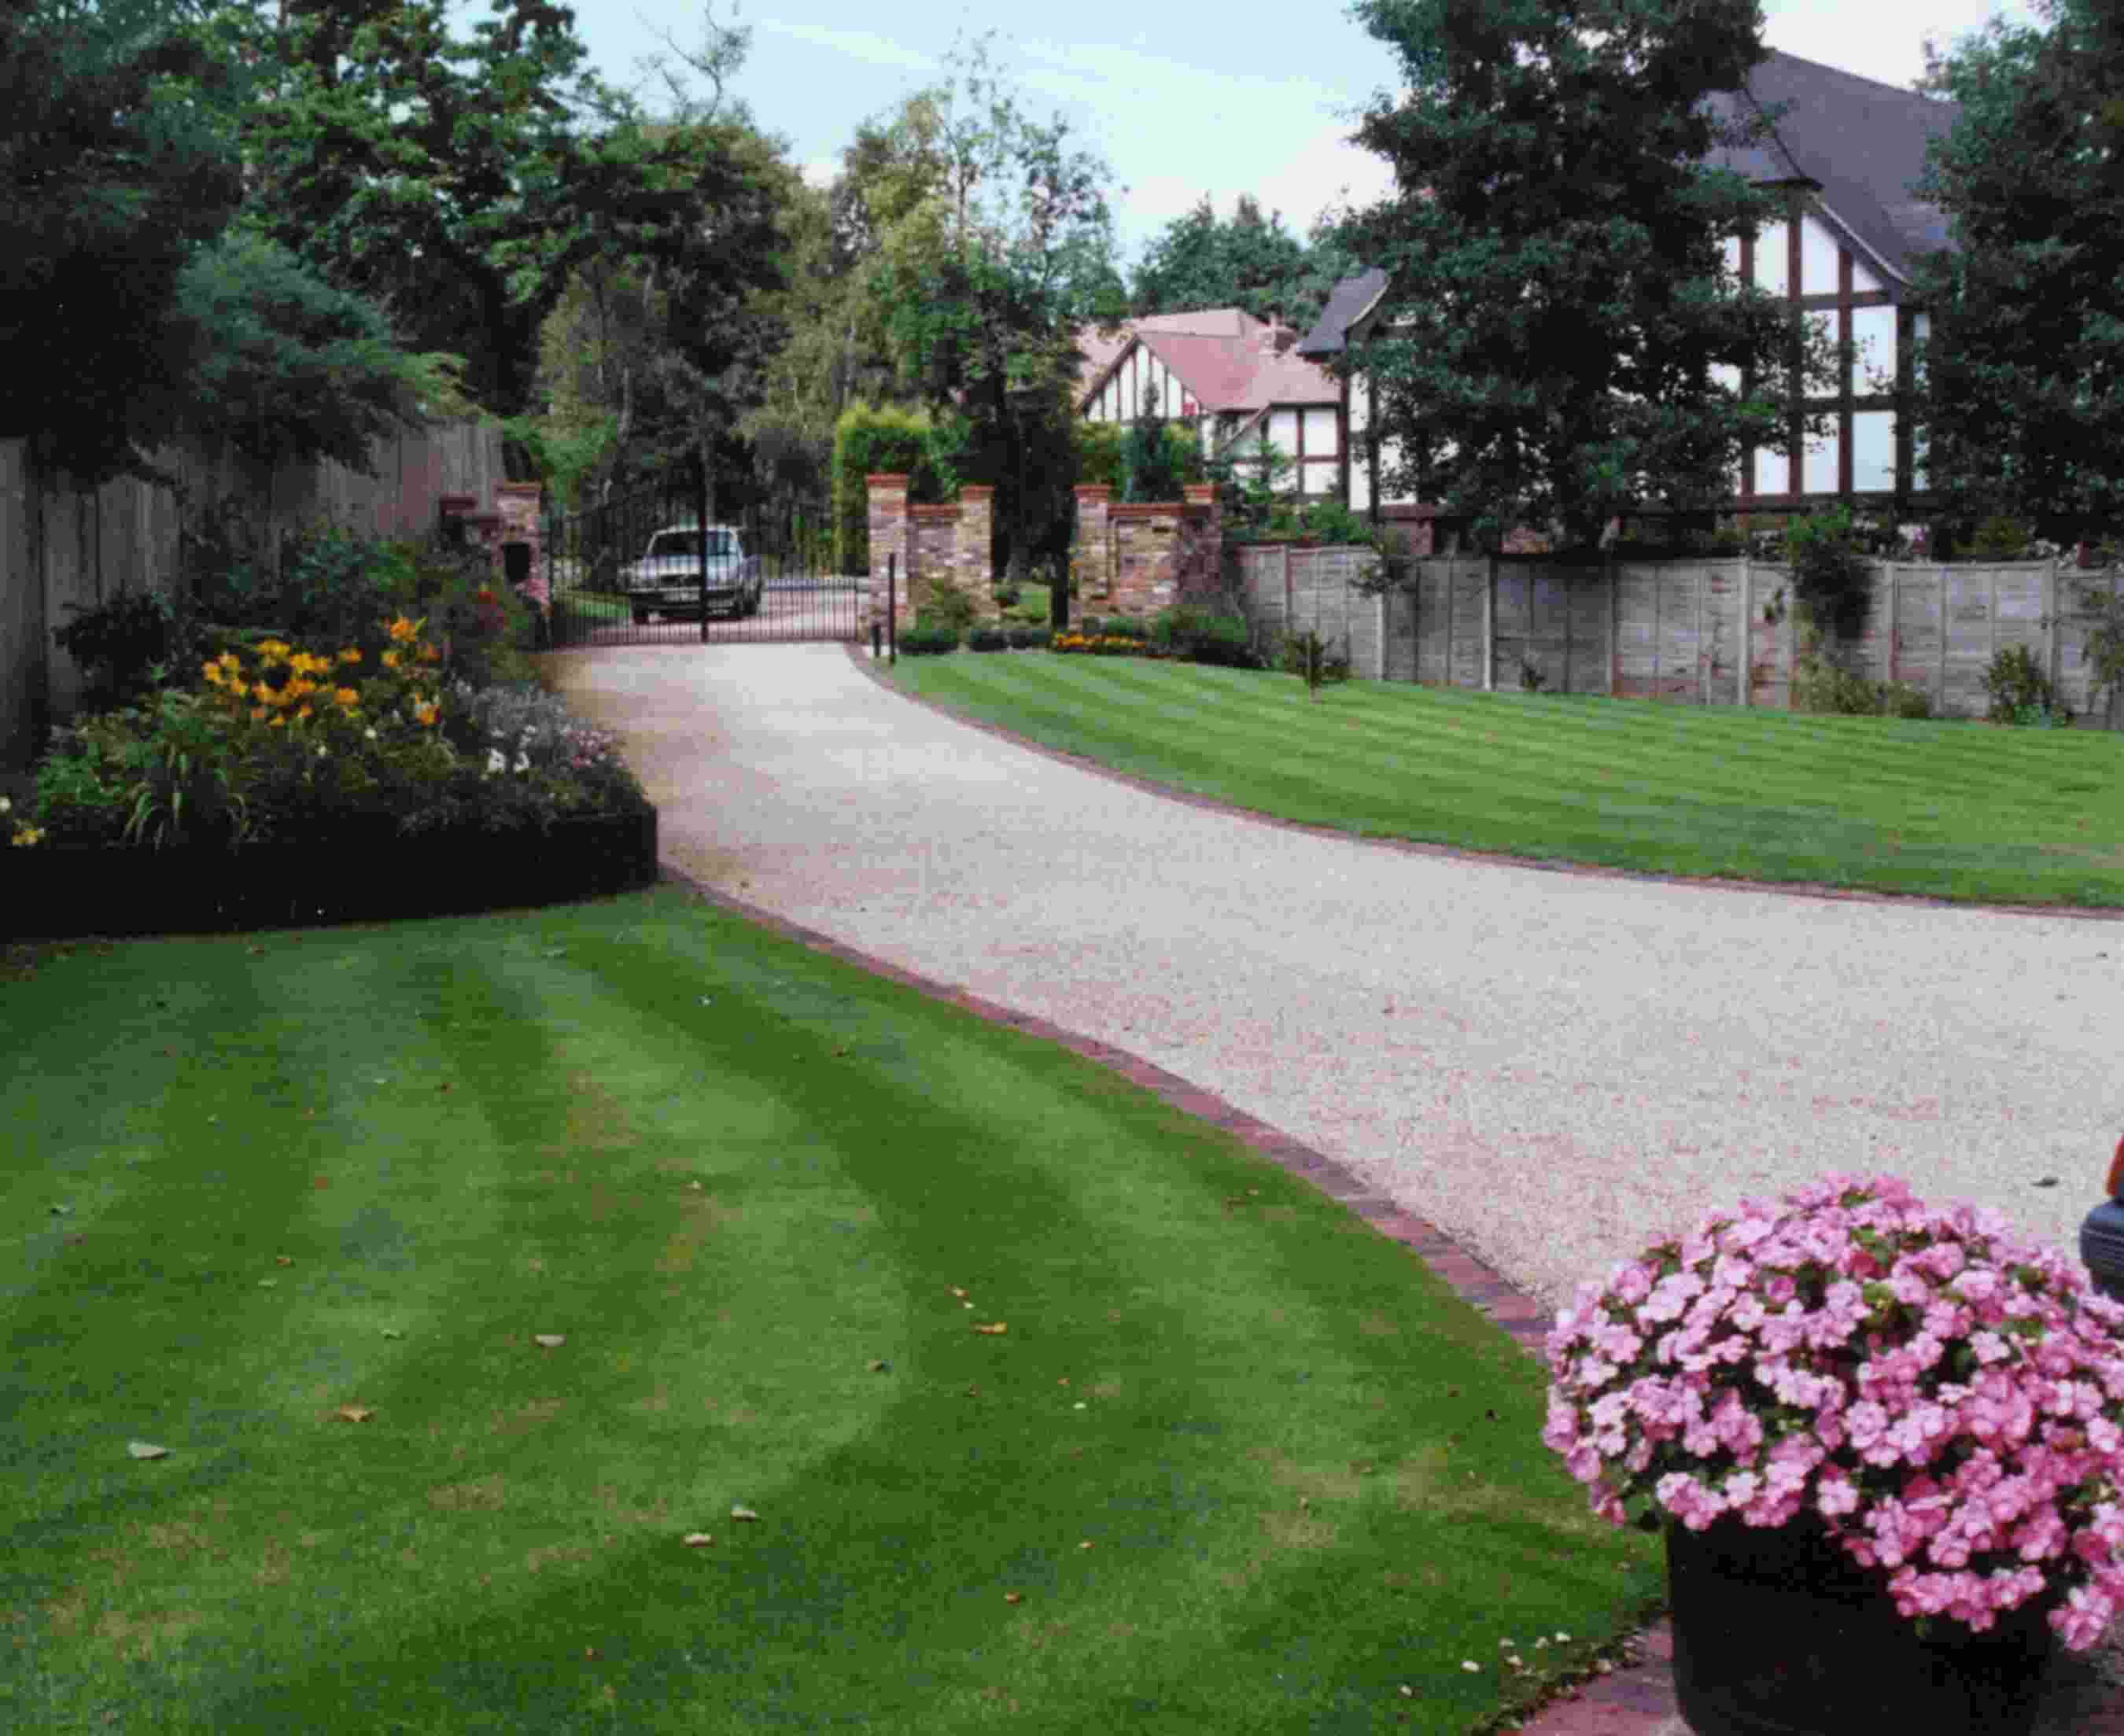 Brick Edged Bound Gravel Driveway Smart And Clean Looking If You Have A Gravel Driveway Driveway Landscaping Backyard Walkway Sidewalk Landscaping